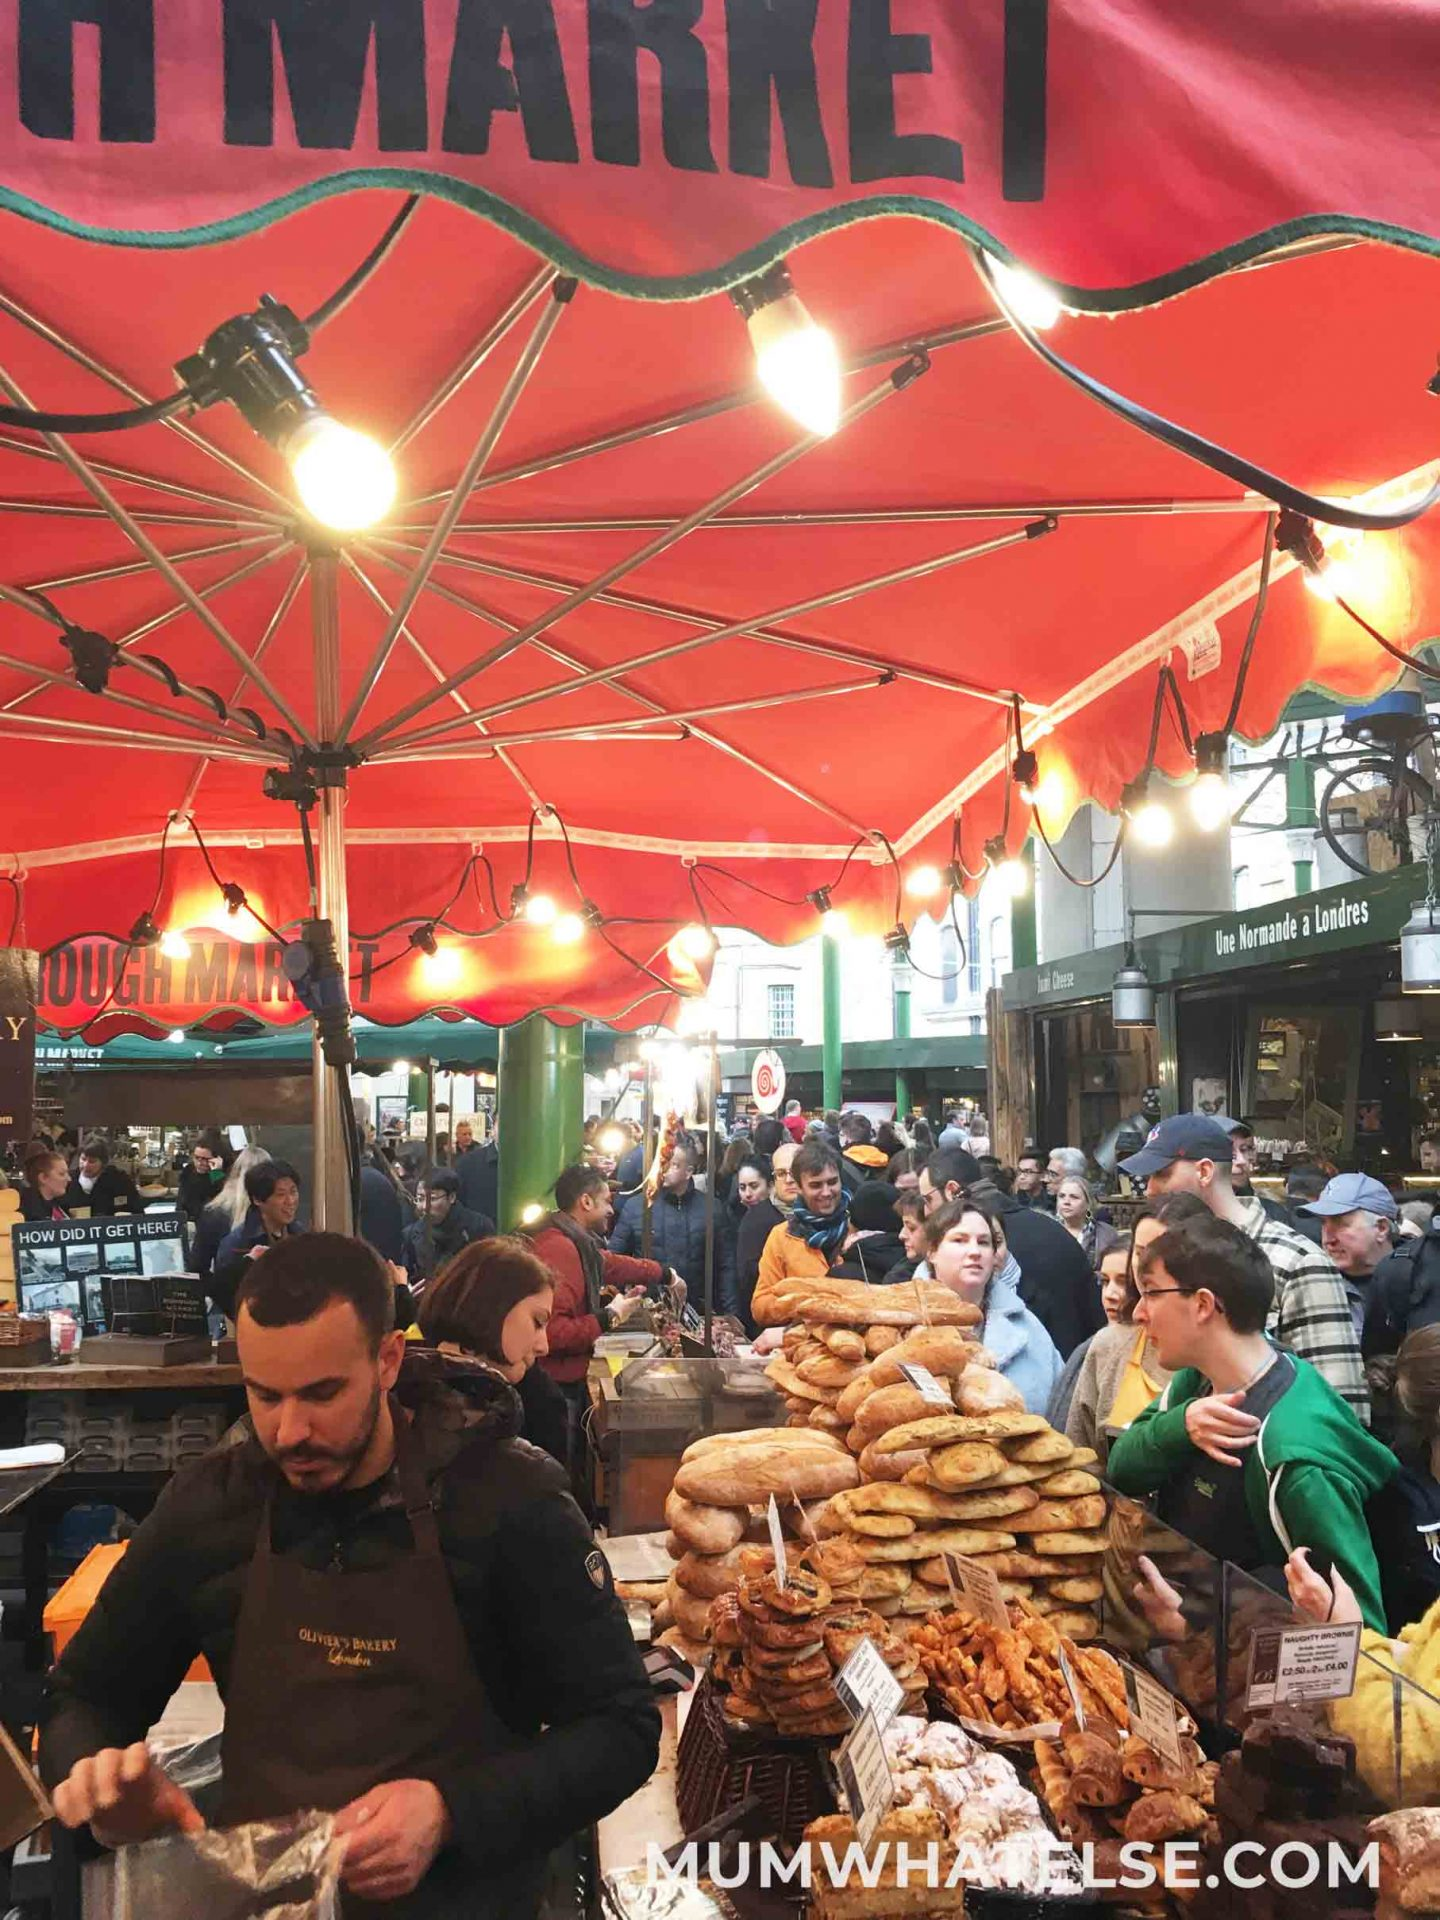 a barncarella of Borough Market